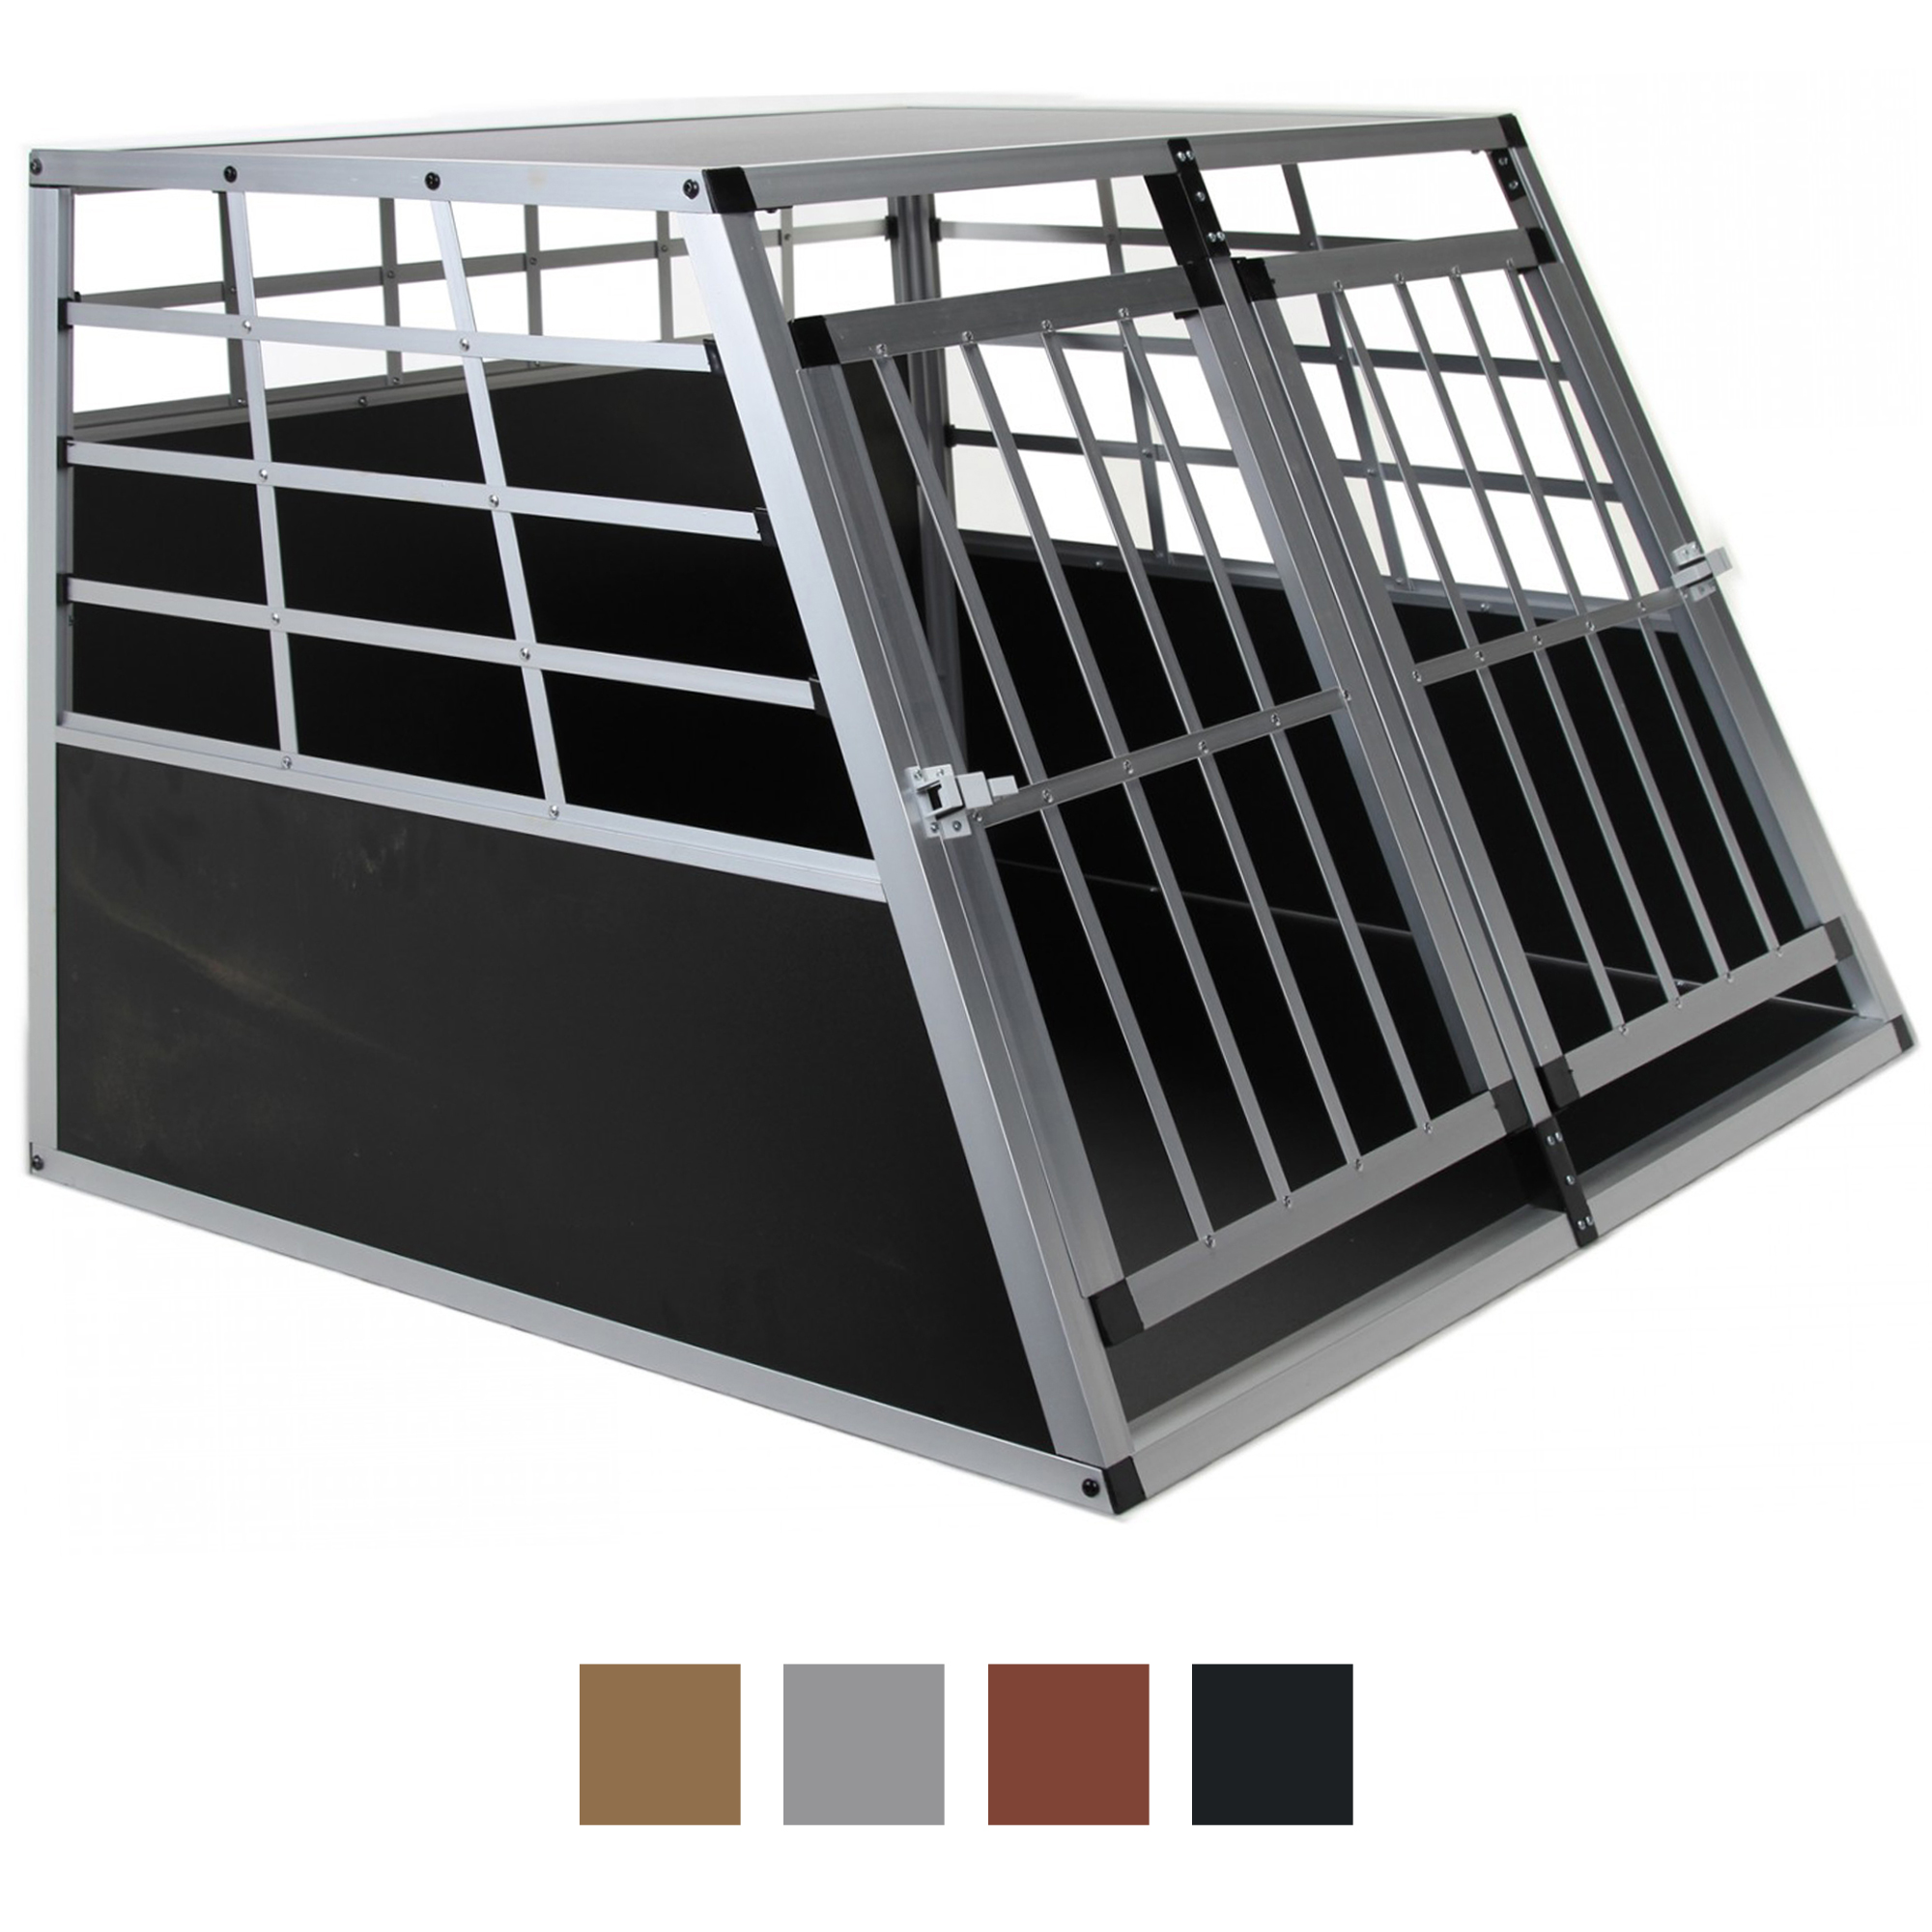 hundetransportbox hundebox transportbox auto gitterbox. Black Bedroom Furniture Sets. Home Design Ideas